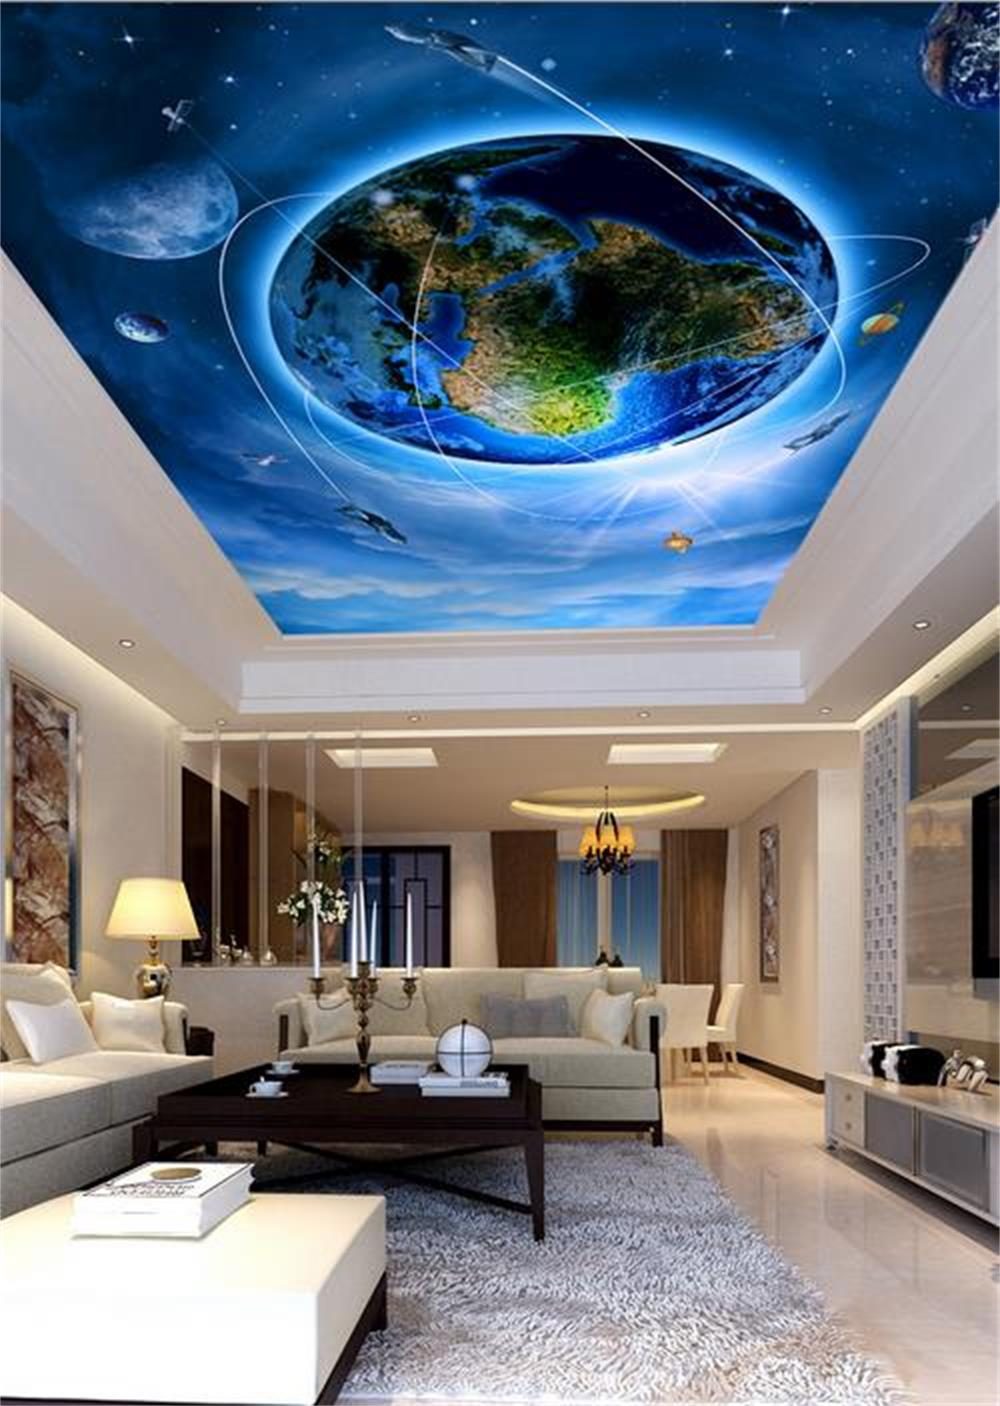 ktv room ceiling design - photo #29